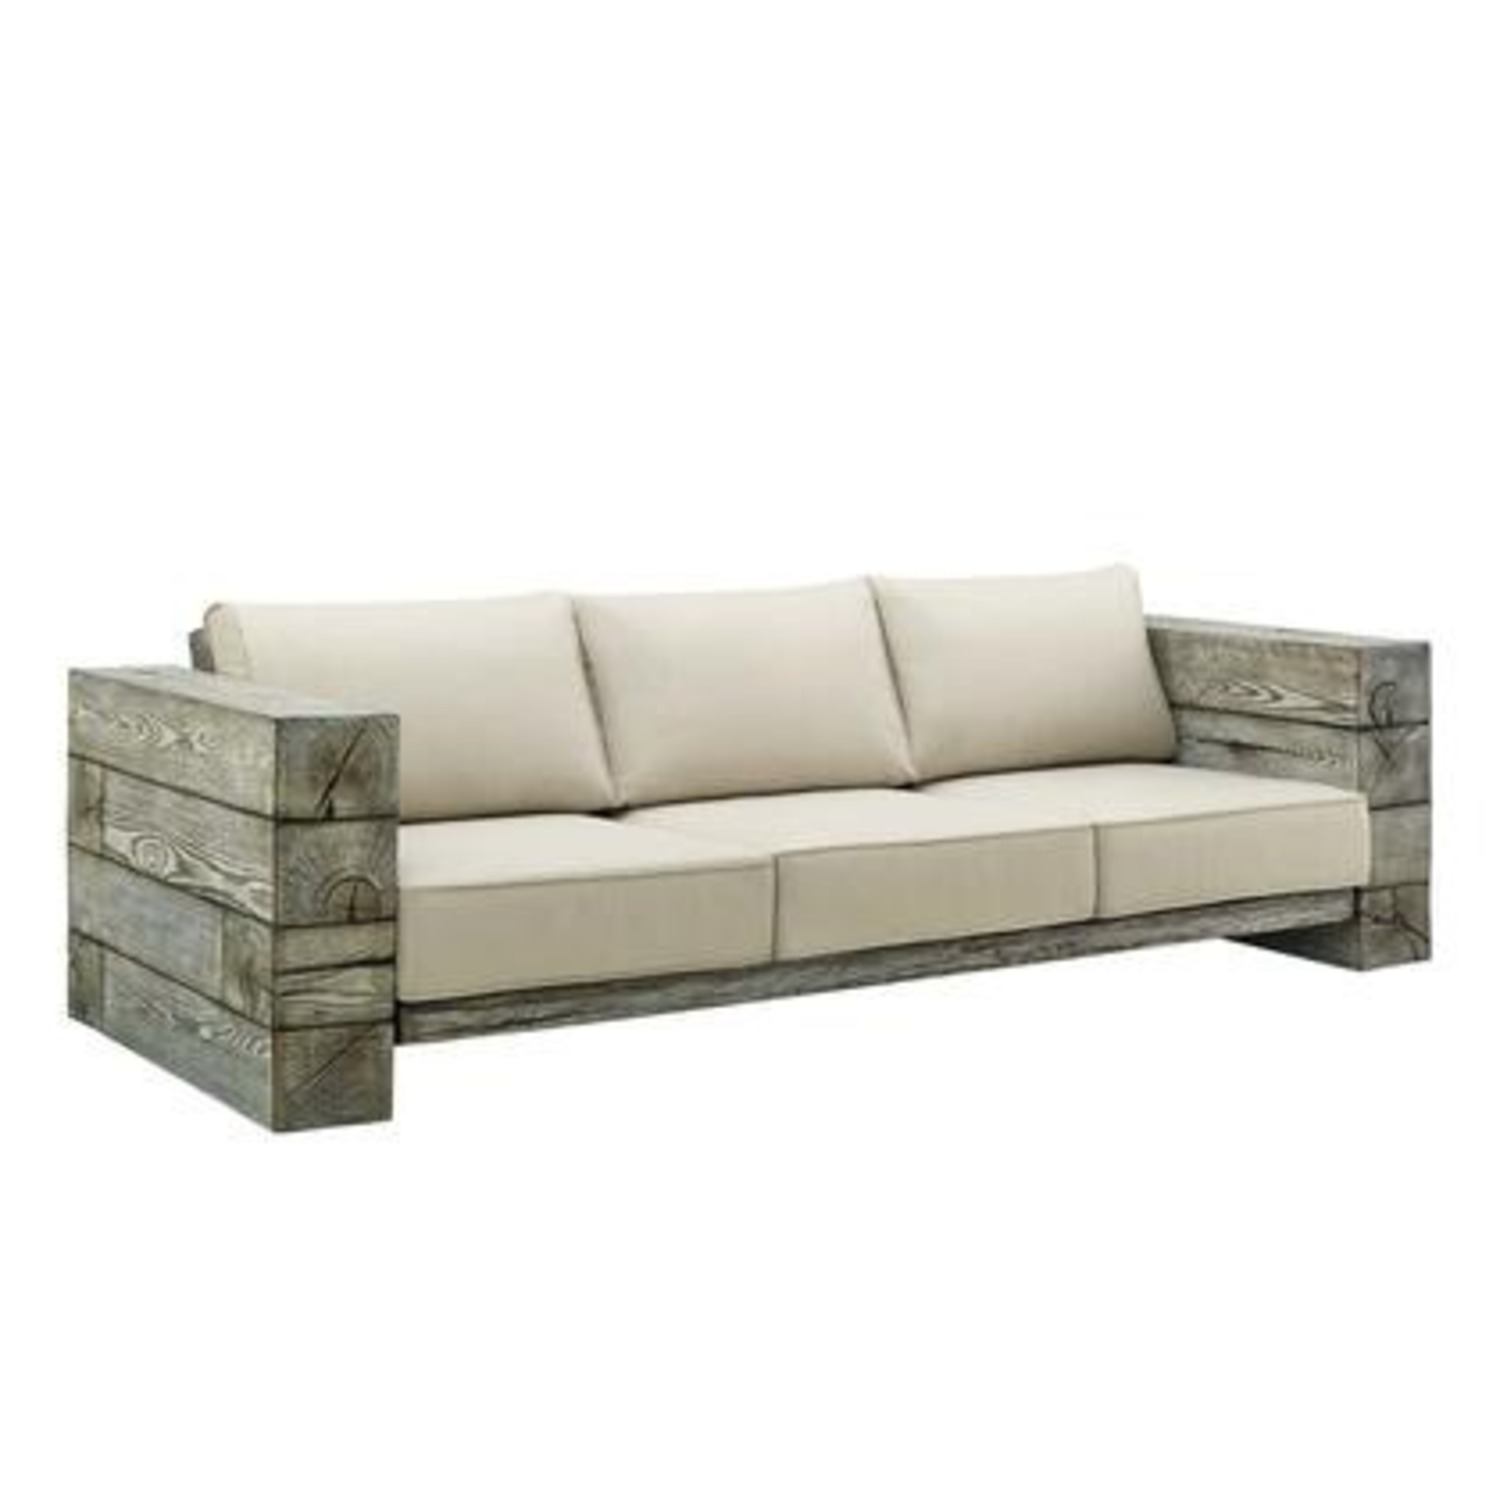 Outdoor Patio Sofa In Light Gray Beige Fabric - image-0